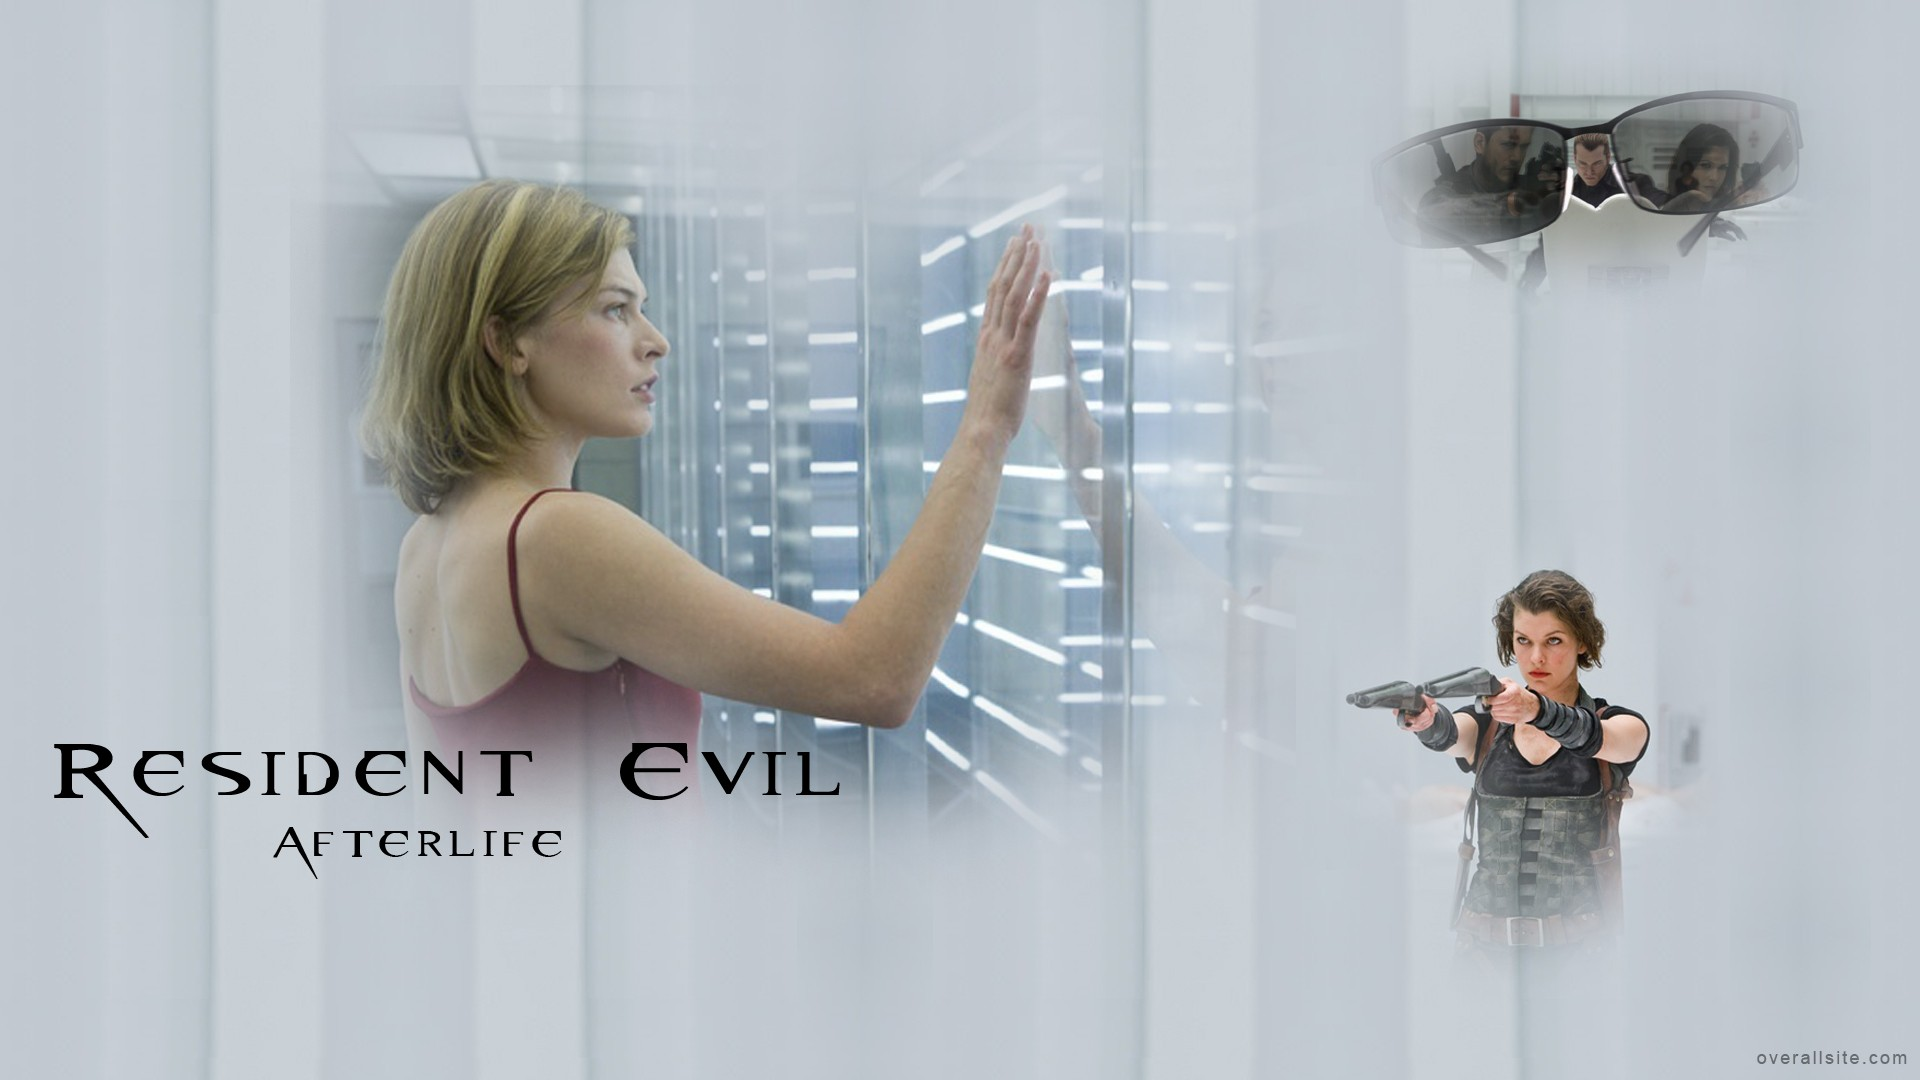 Resident evil afterlife wallpapers pictures images - Resident evil afterlife wallpaper ...